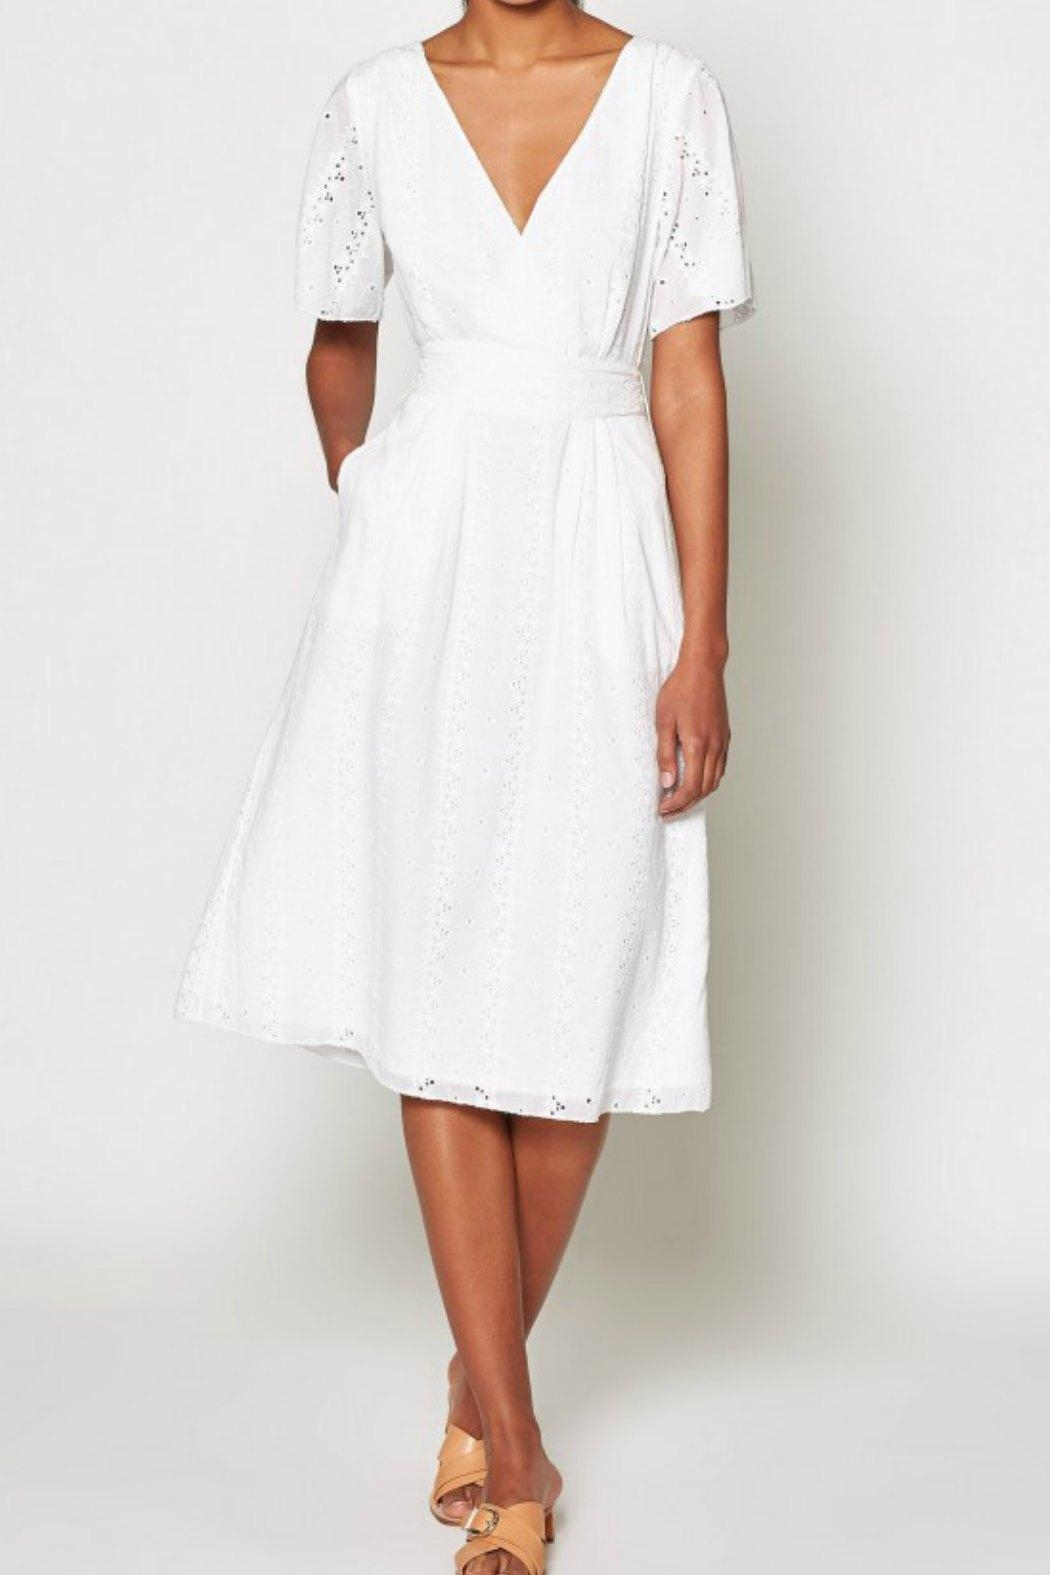 Joie Azariah Eyelet Dress - Side Cropped Image